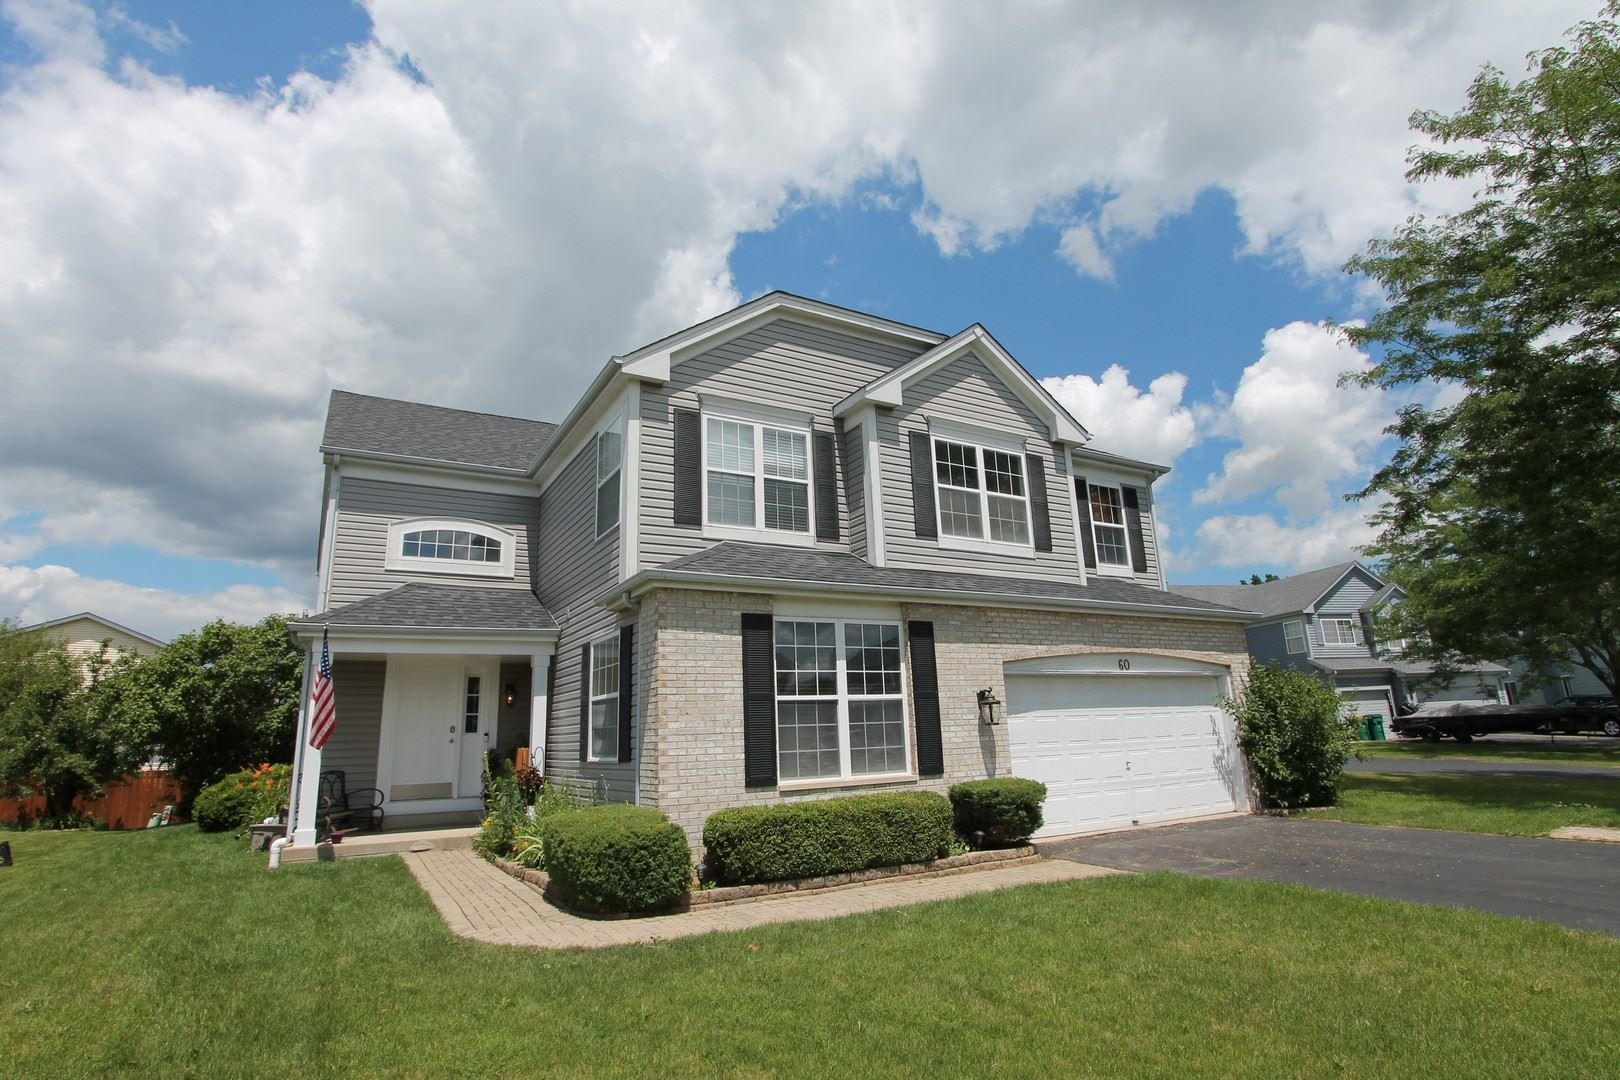 60 W Tall Grass Court, Round Lake Beach, IL 60073 - #: 10775904